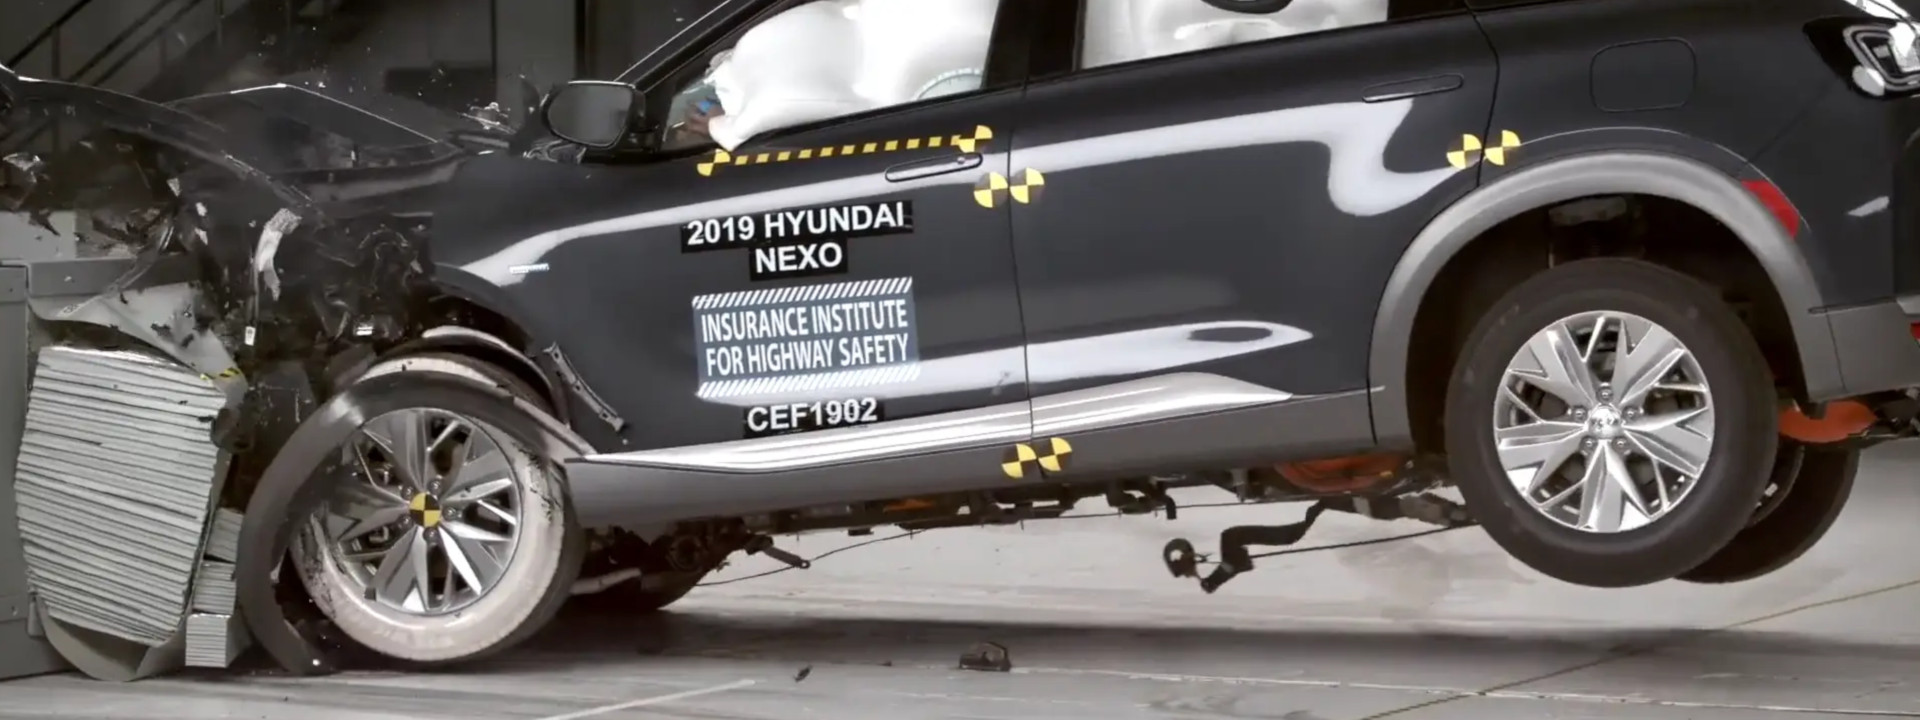 How the Hyundai NEXO performed in the hydrogen fuel cell test by IIHS